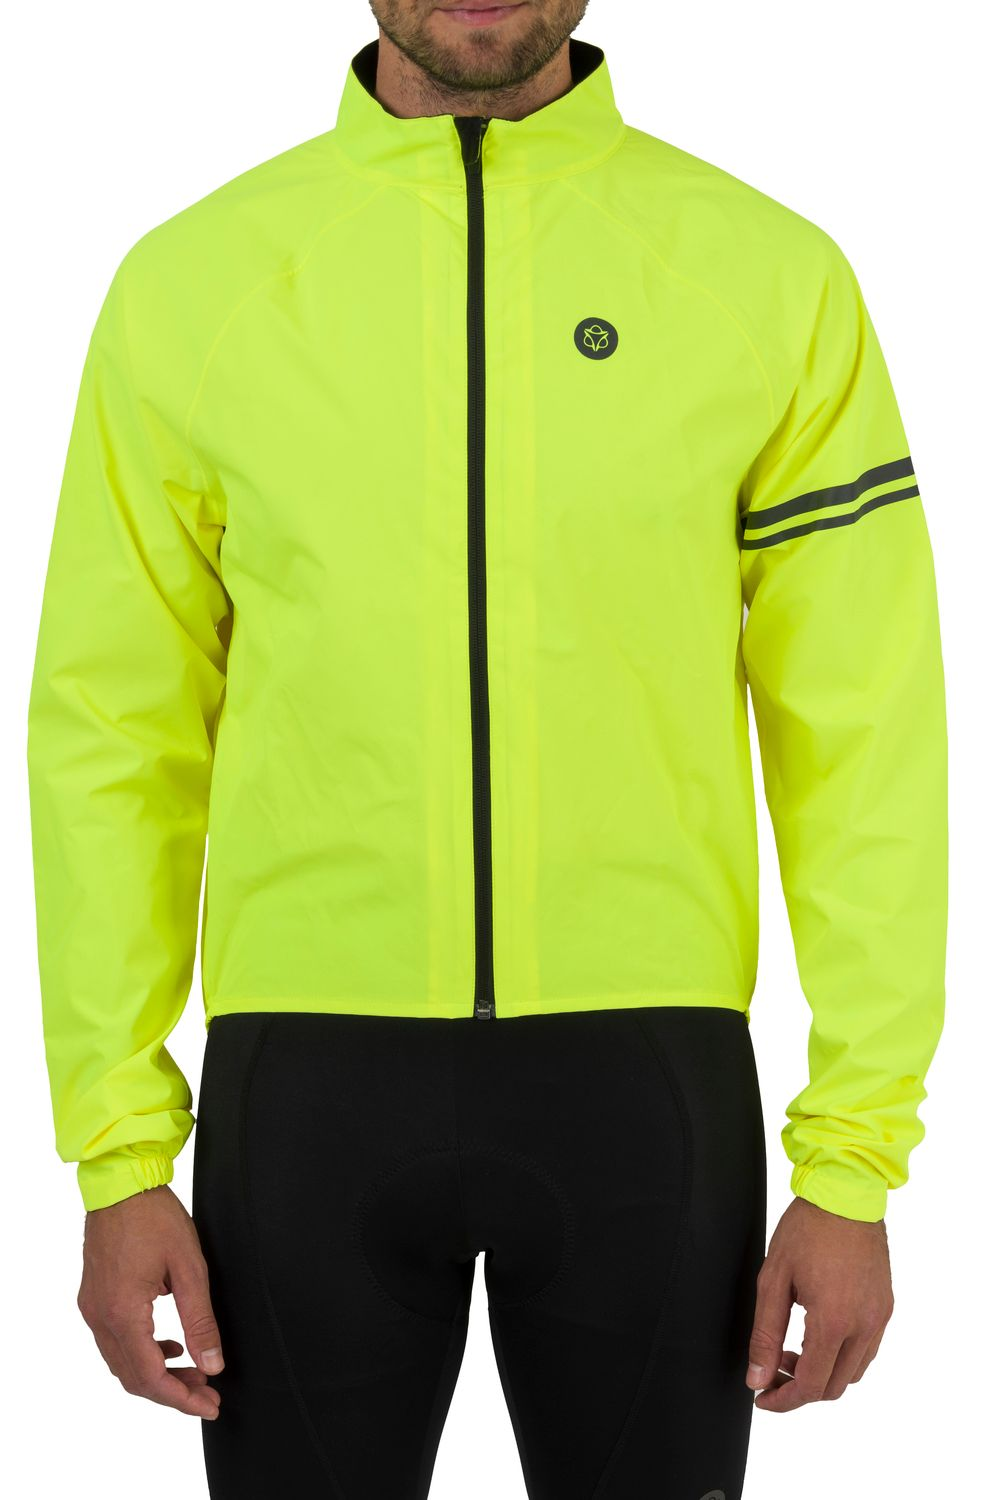 Rain Jacket Essential Men fit example